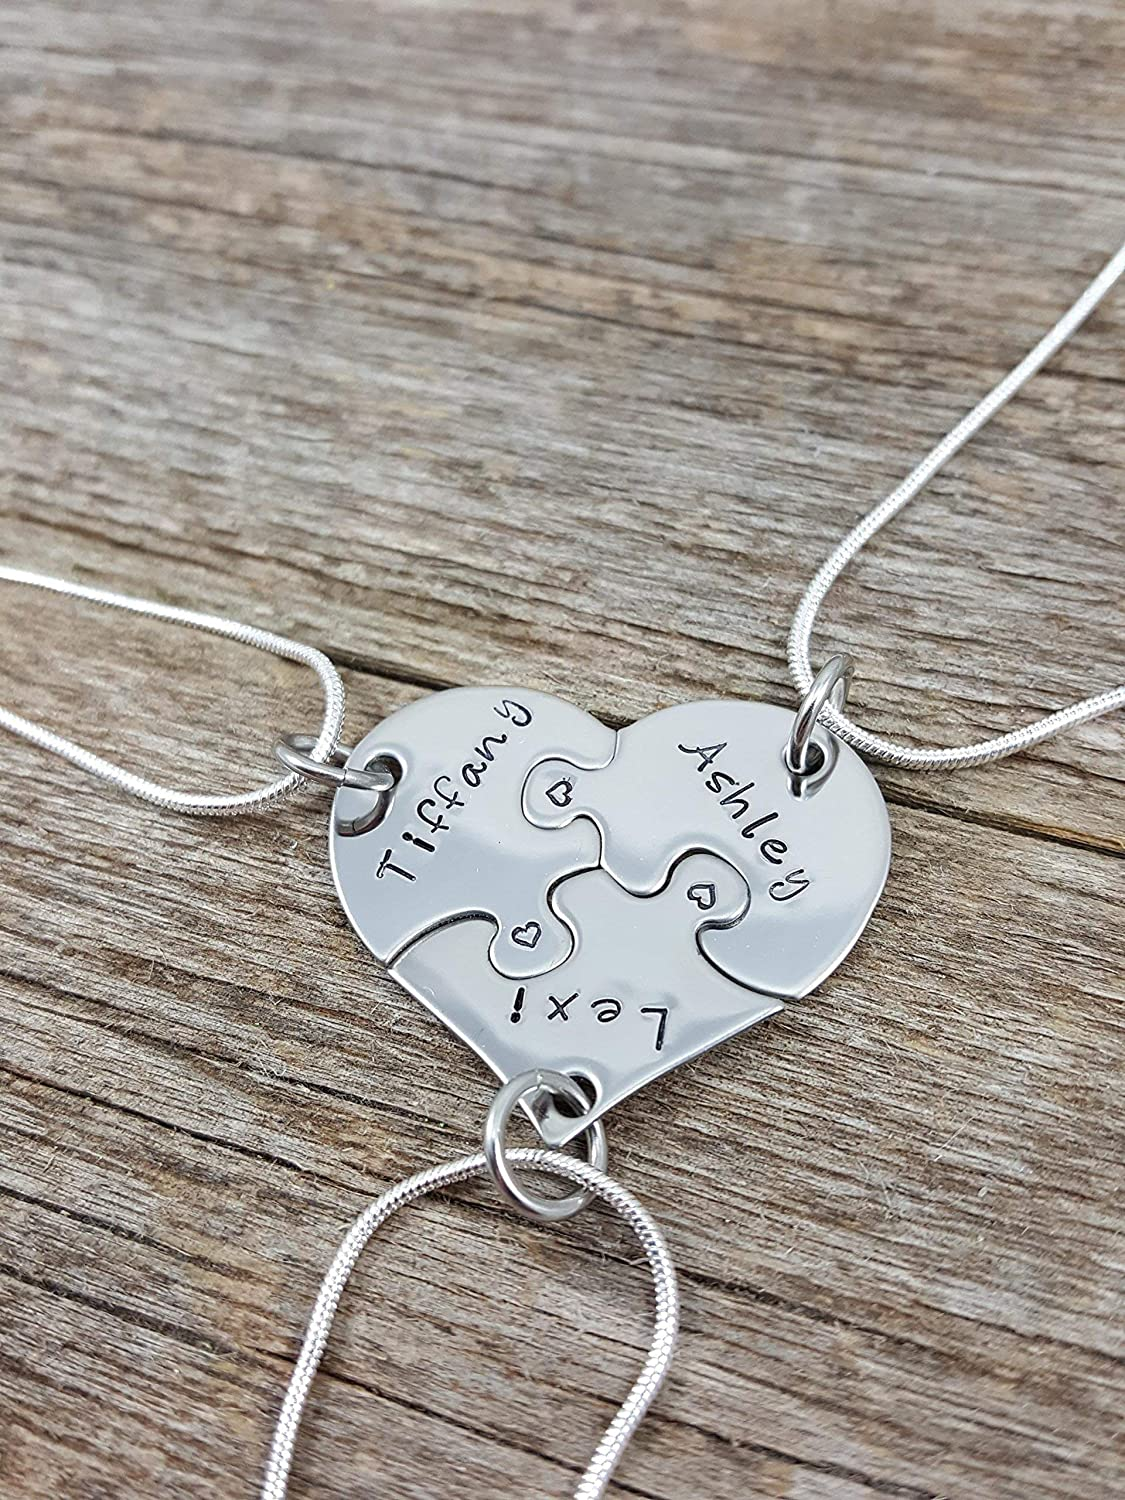 20c429817 Amazon.com: Best Friends Necklace set, 3 piece heart puzzle necklace set,  Sorority sisters jewelry, Sister gifts, Hand stamped jewelry, Custom  necklaces, ...